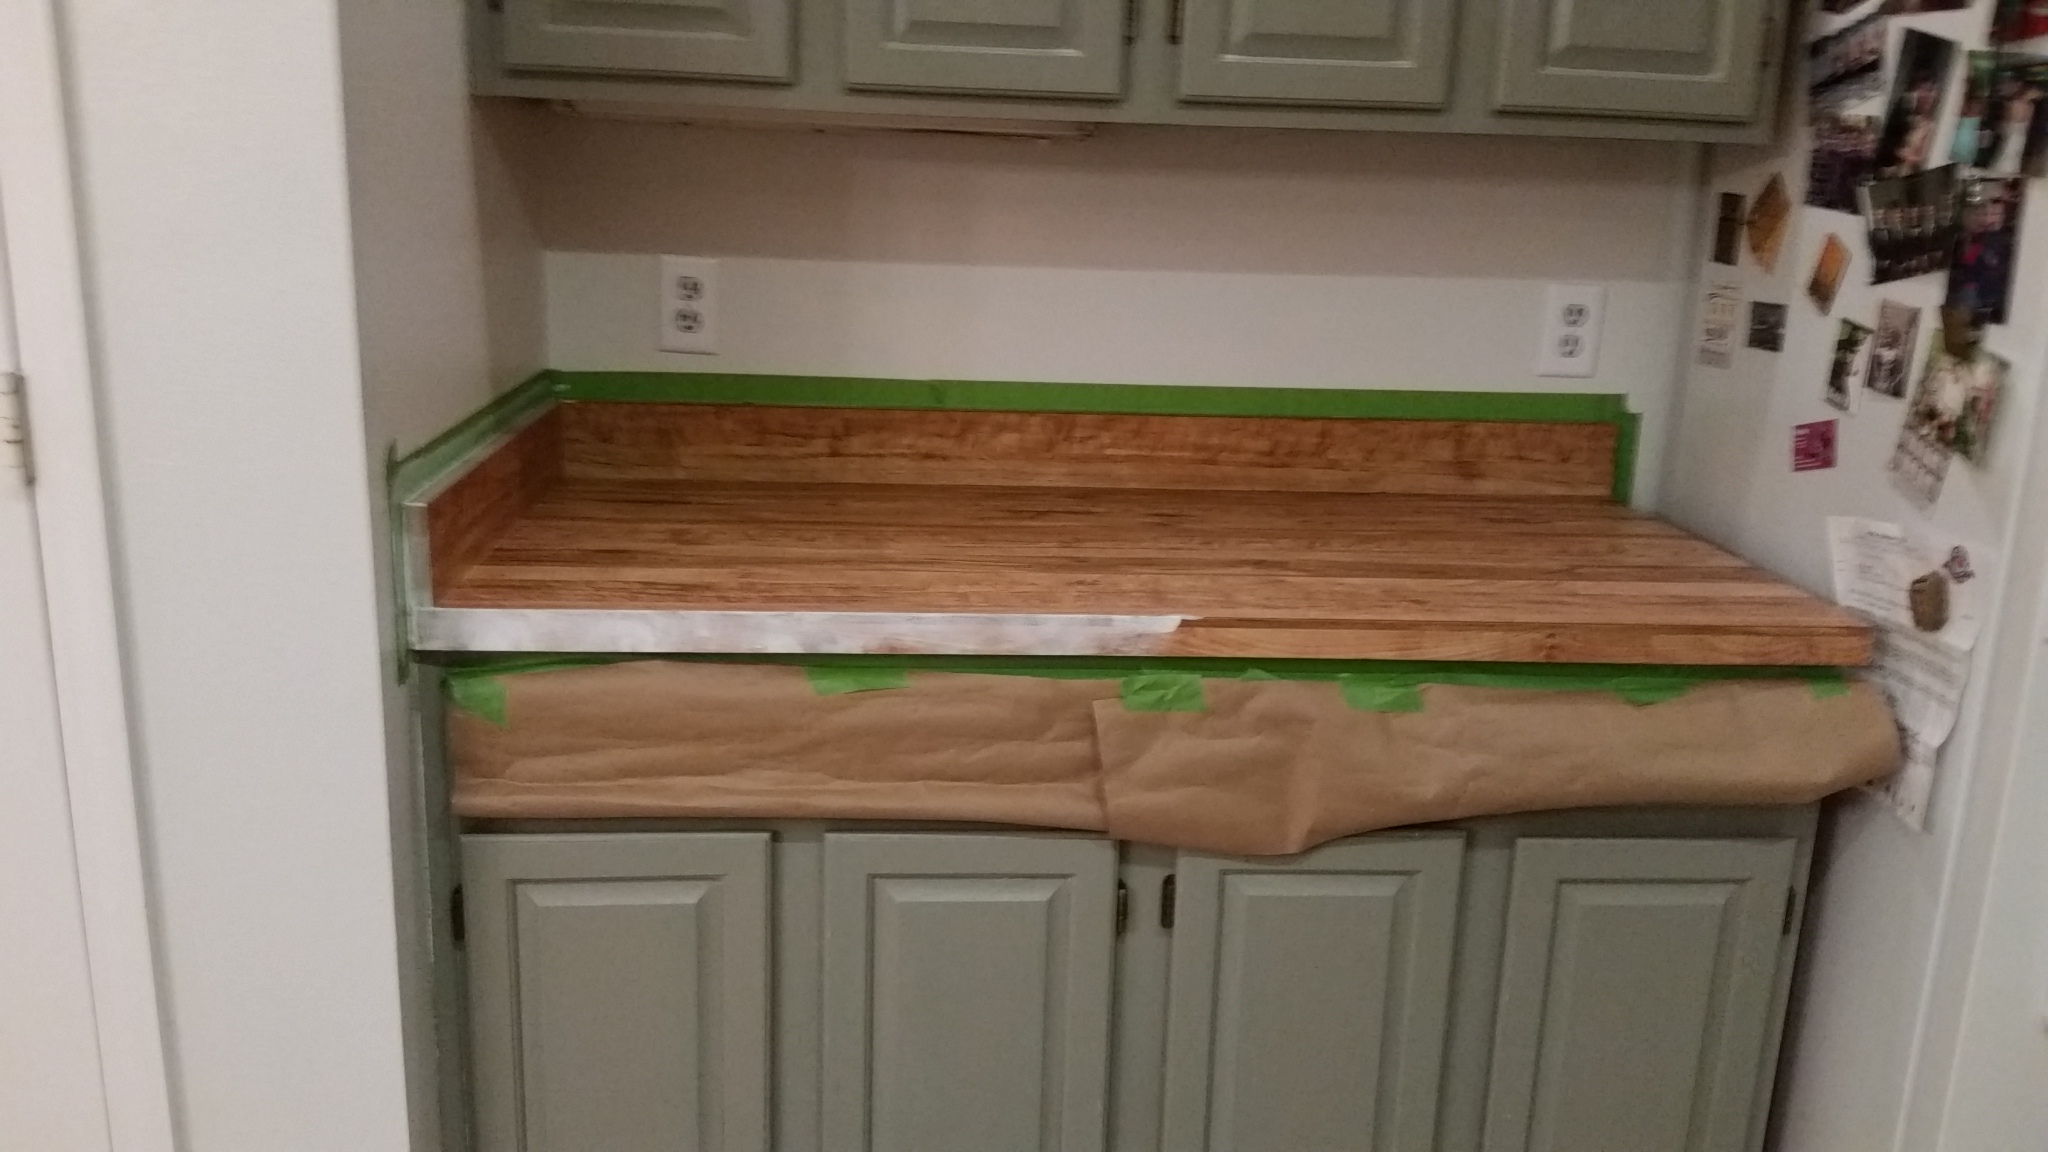 counter taped up